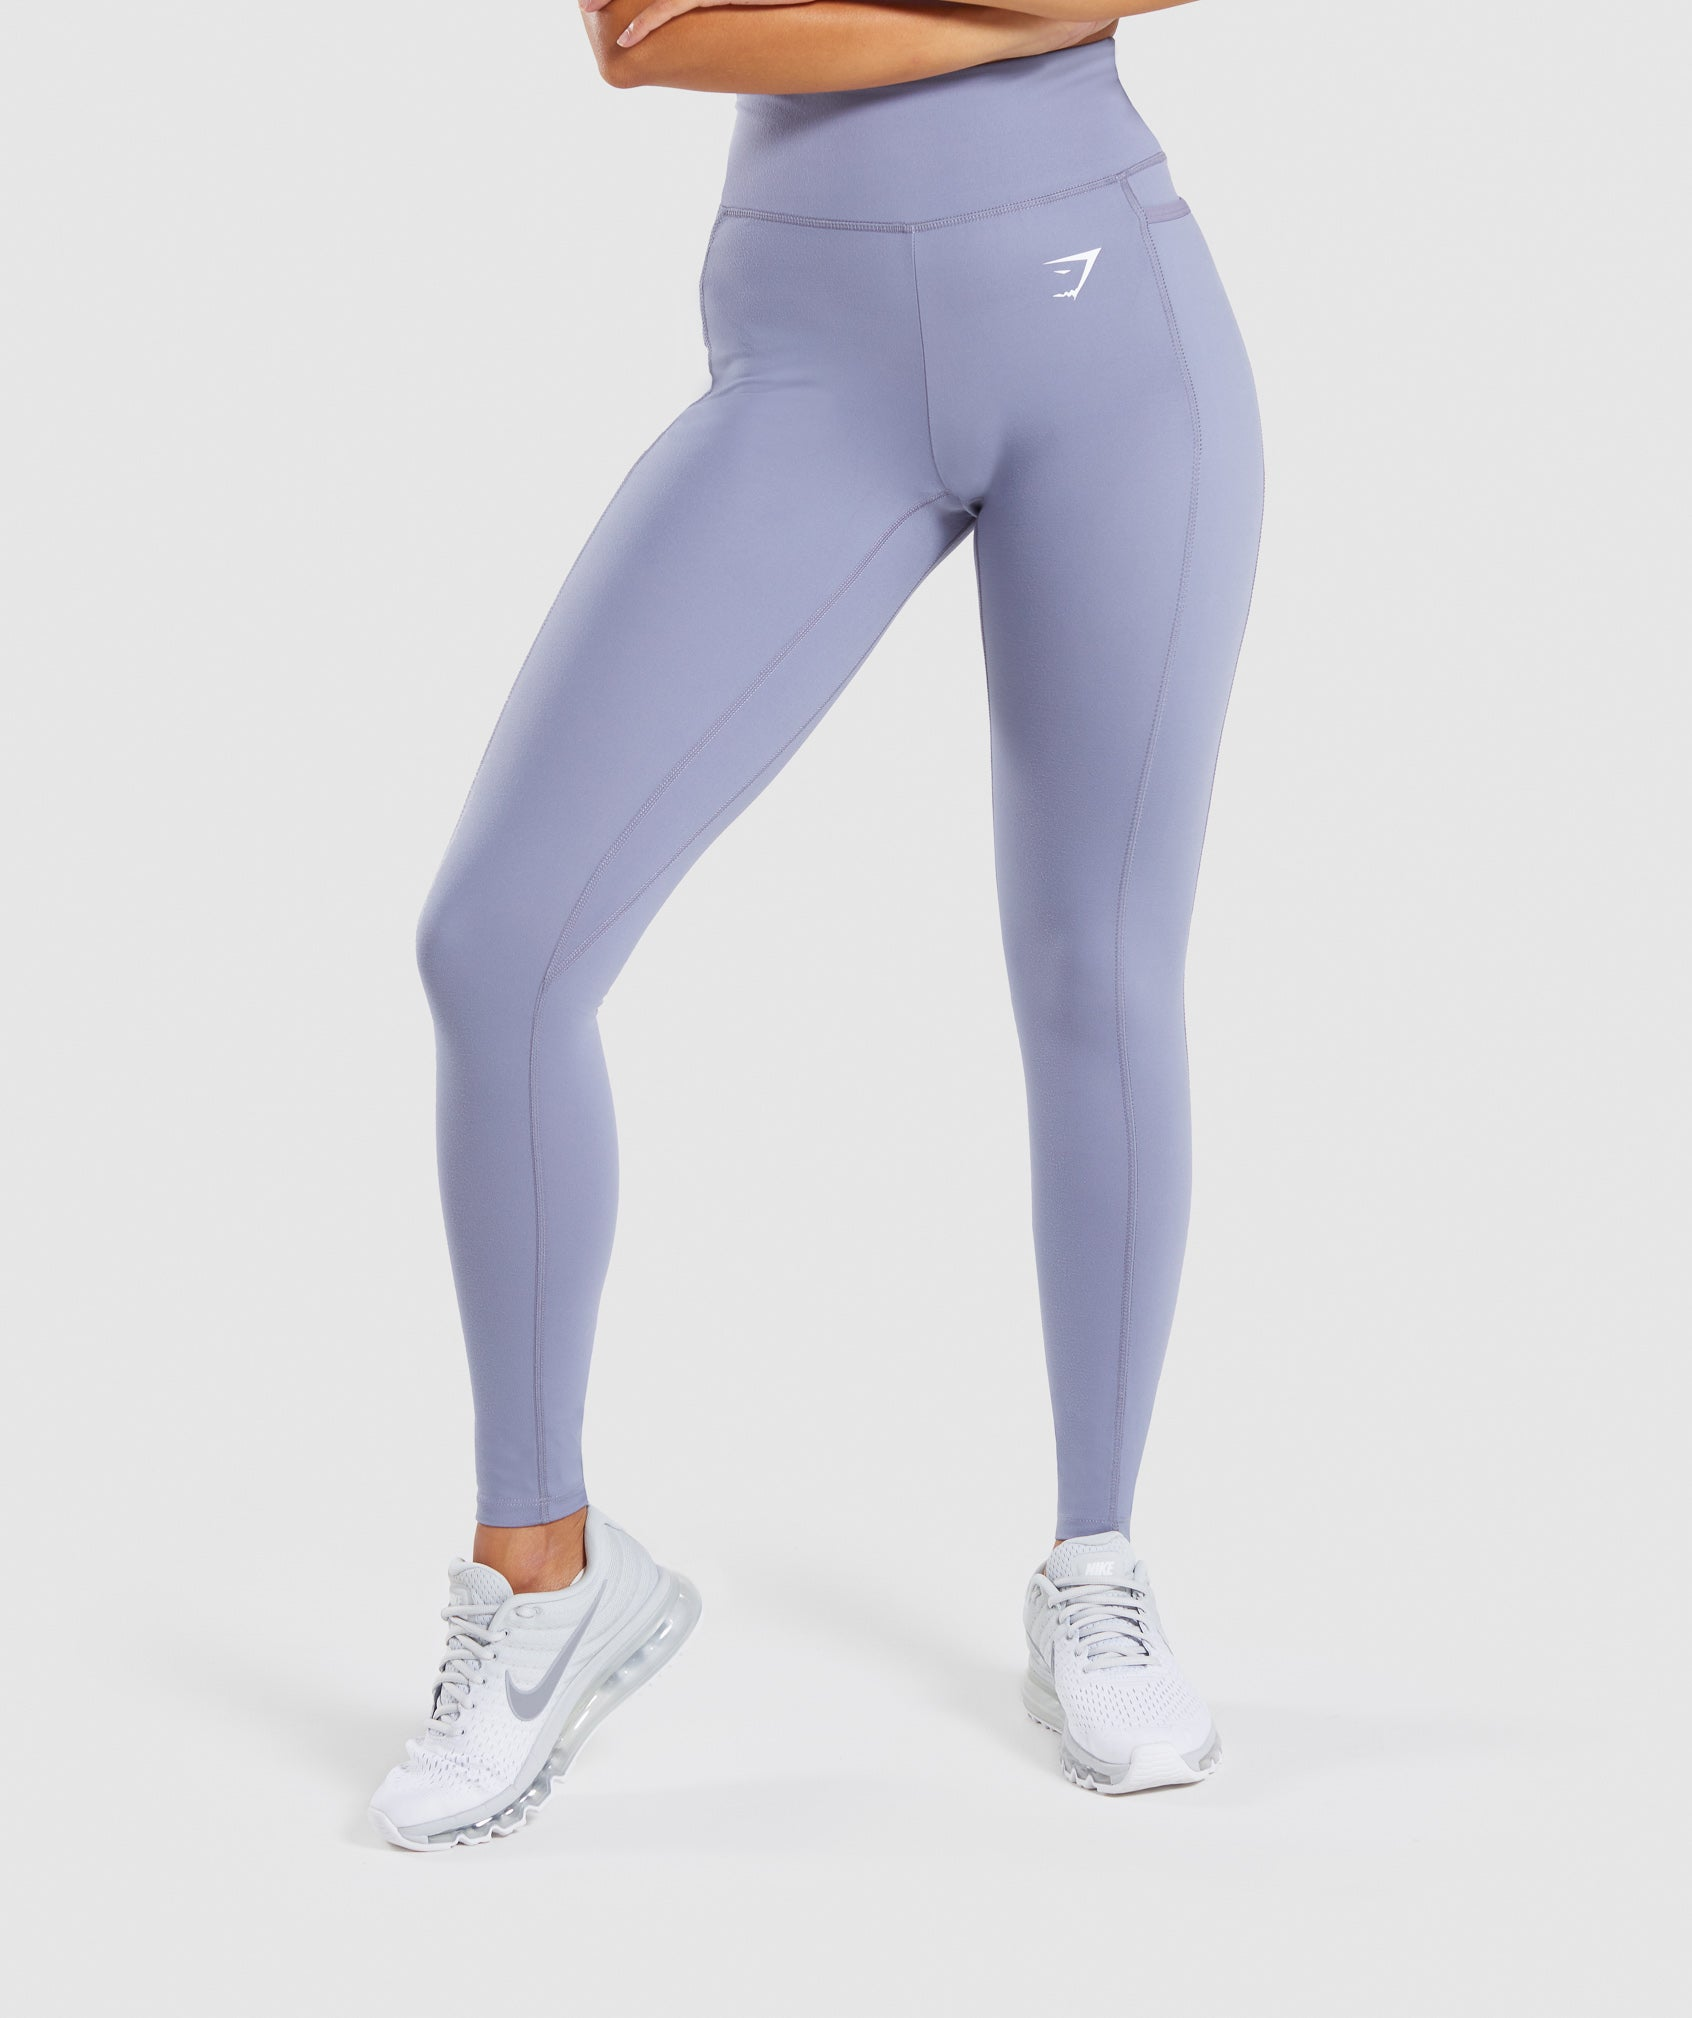 f108f28c658c3 Gymshark Dreamy Leggings 2.0 - Black | Gymshark